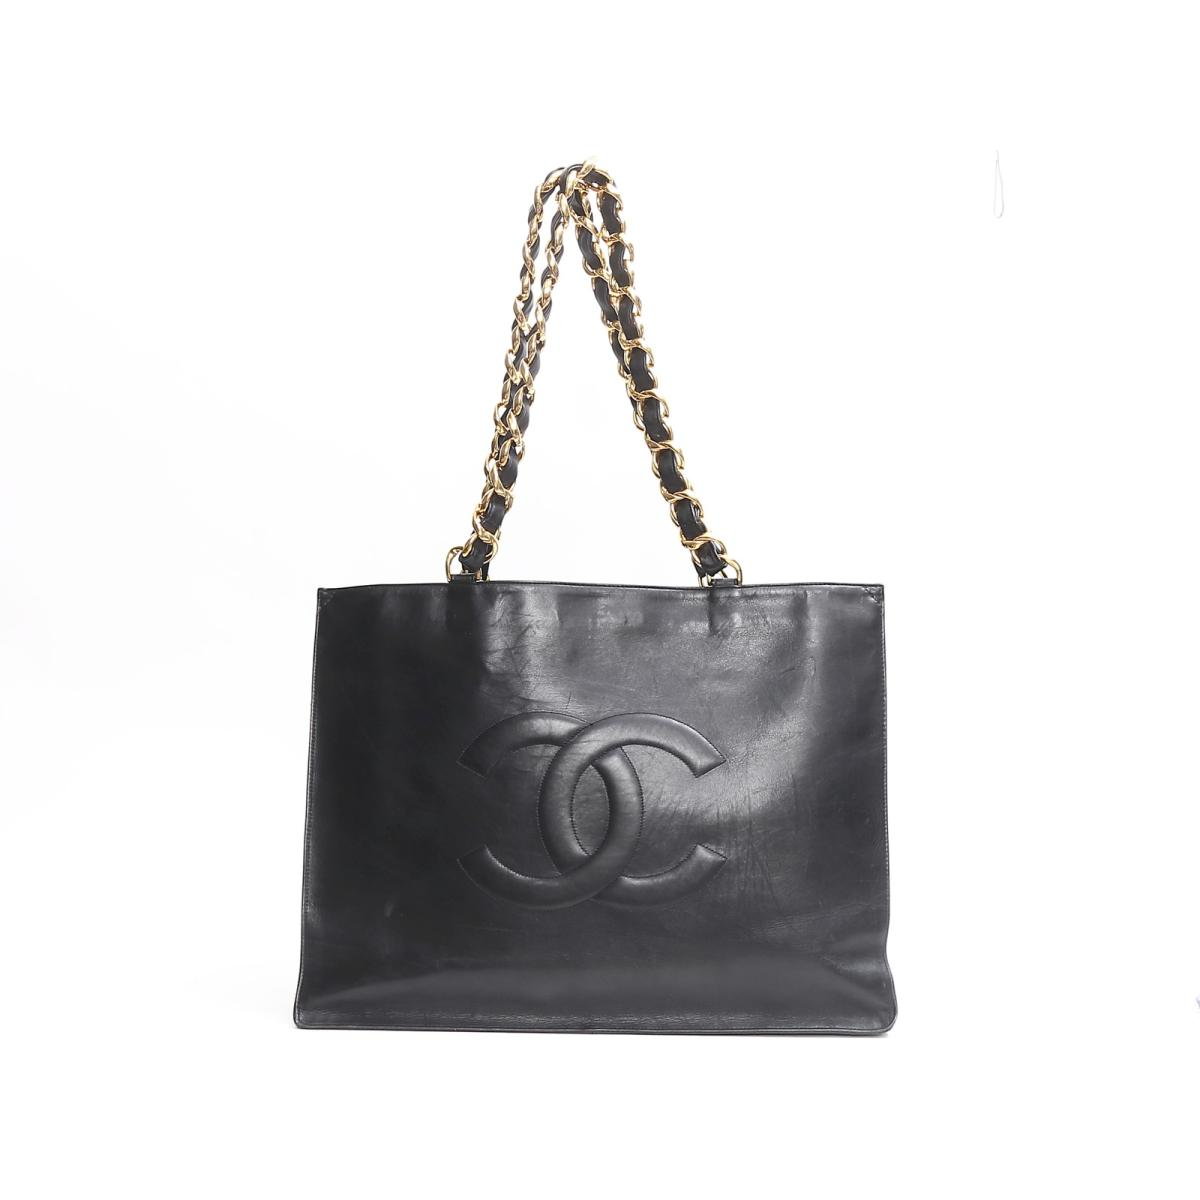 625a5f5747fd2e Auth CHANEL Chain Tote Bag leather Black Used Vintage | BRANDOFF  Ginza/TOKYO/Japan ...